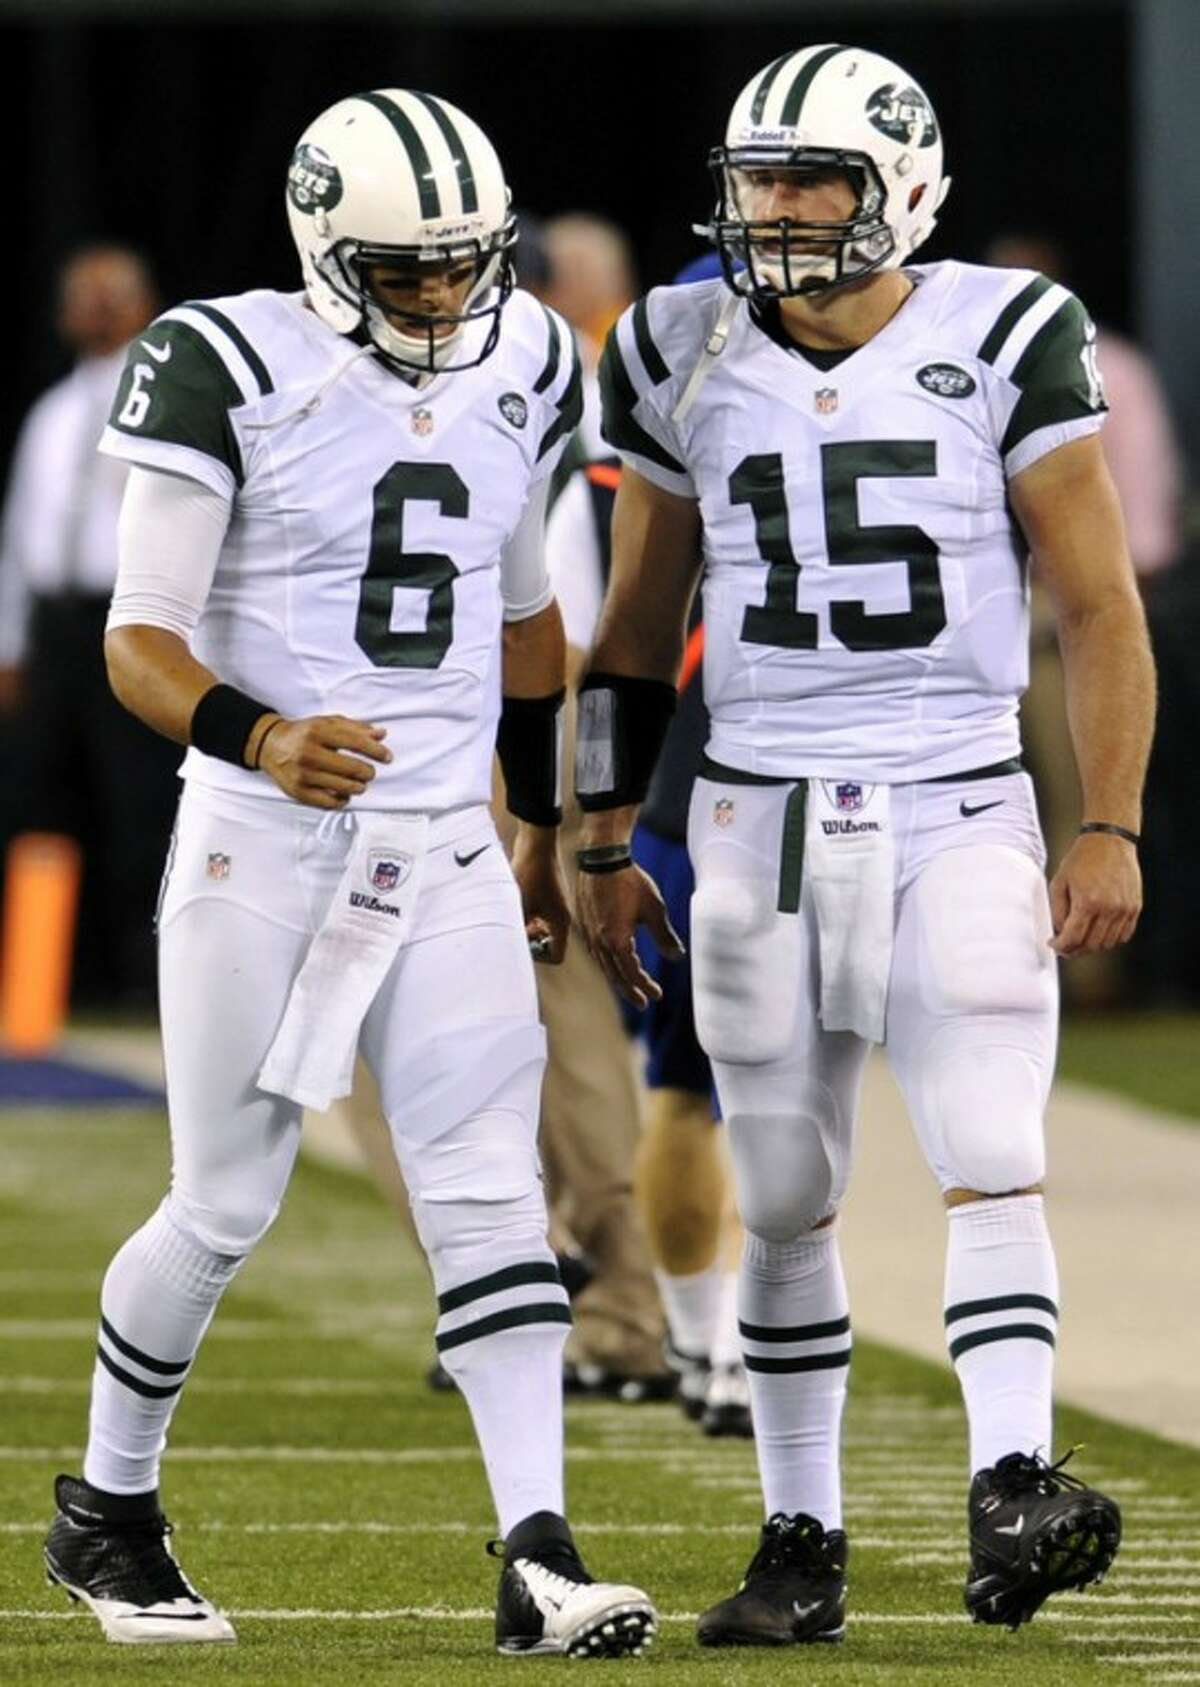 FILE - In this Aug. 18, 2012, file photo, New York Jets quarterback Mark Sanchez (6) meets backup quarterback Tim Tebow after Sanchez threw an interception that was returned for a touchdown during the first half of a preseason NFL football game against the New York Giants in East Rutherford, N.J. The Jets' defense, featuring an improved secondary, is shaping up to be one of the toughest in the league but is being overshadowed by a quarterback controversy and the offense's inability to get into the end zone. The Jets are scheduled to begin their regular season on Sept. 9 at home against the Buffalo Bills. (AP Photo/Bill Kostroun, File)